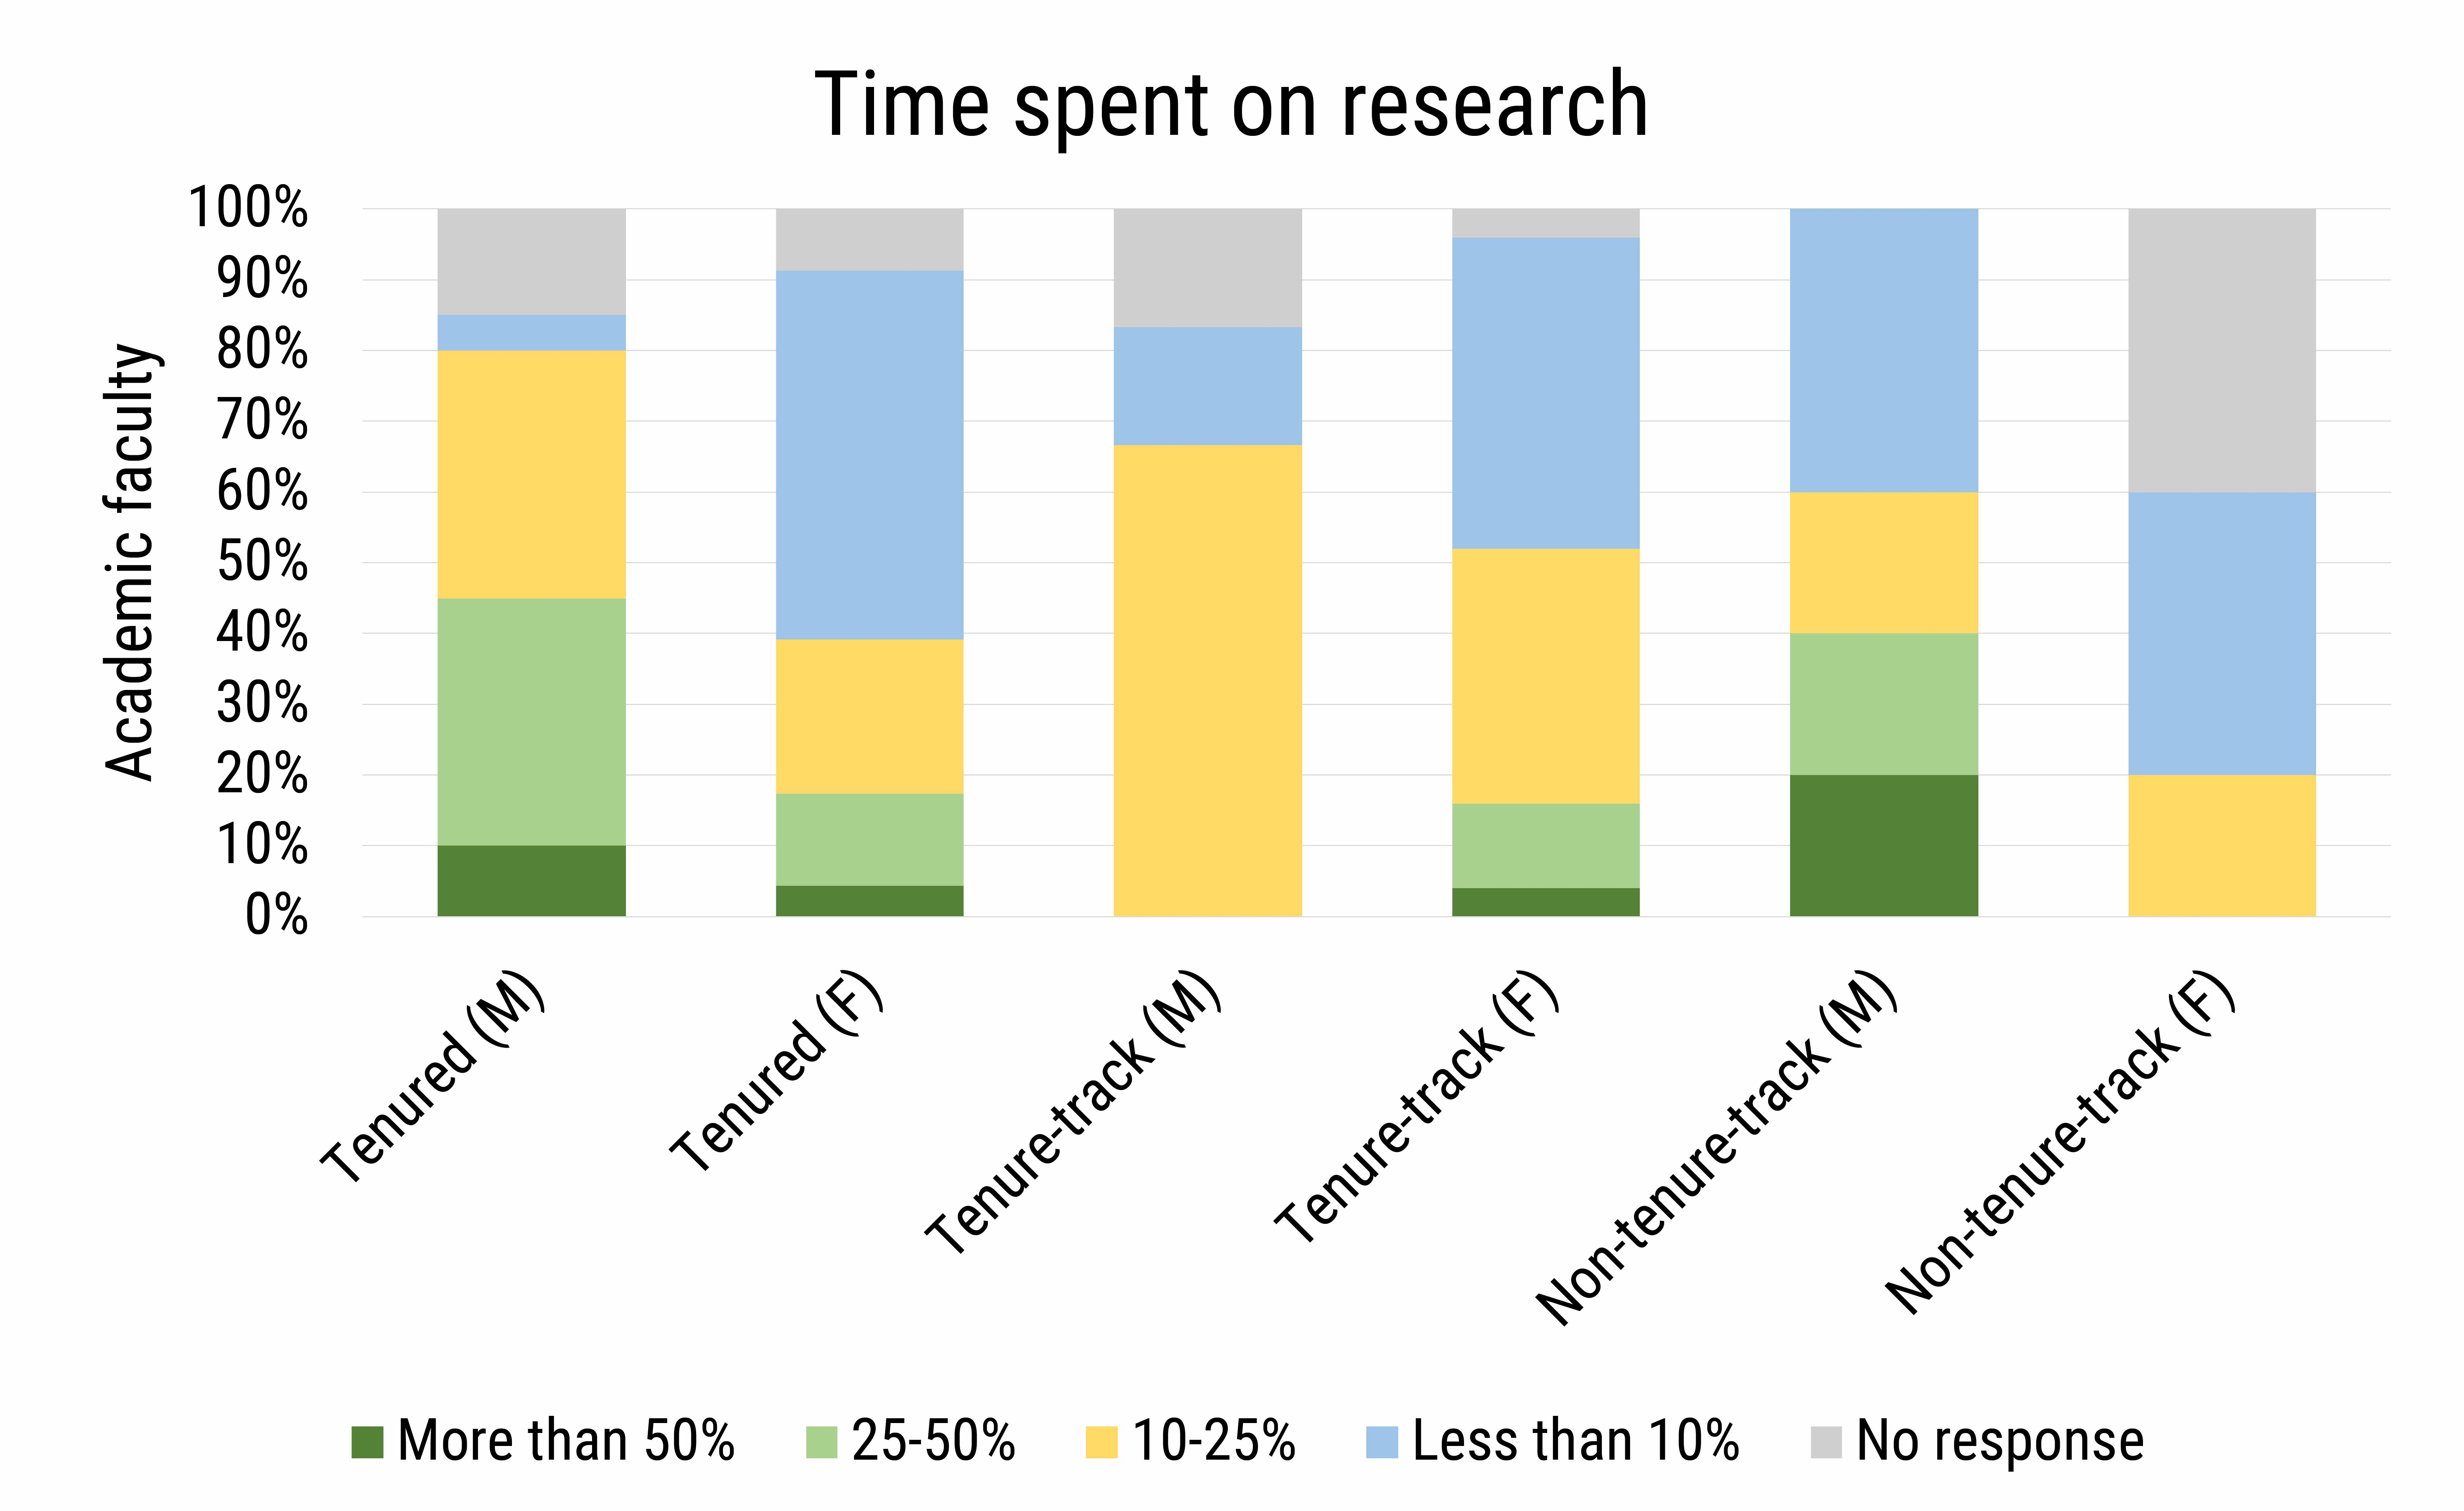 DB_2021-019 chart 03: Time spent on research (Credit: AGI; data from AGI's Geoscience COVID-19 Survey)